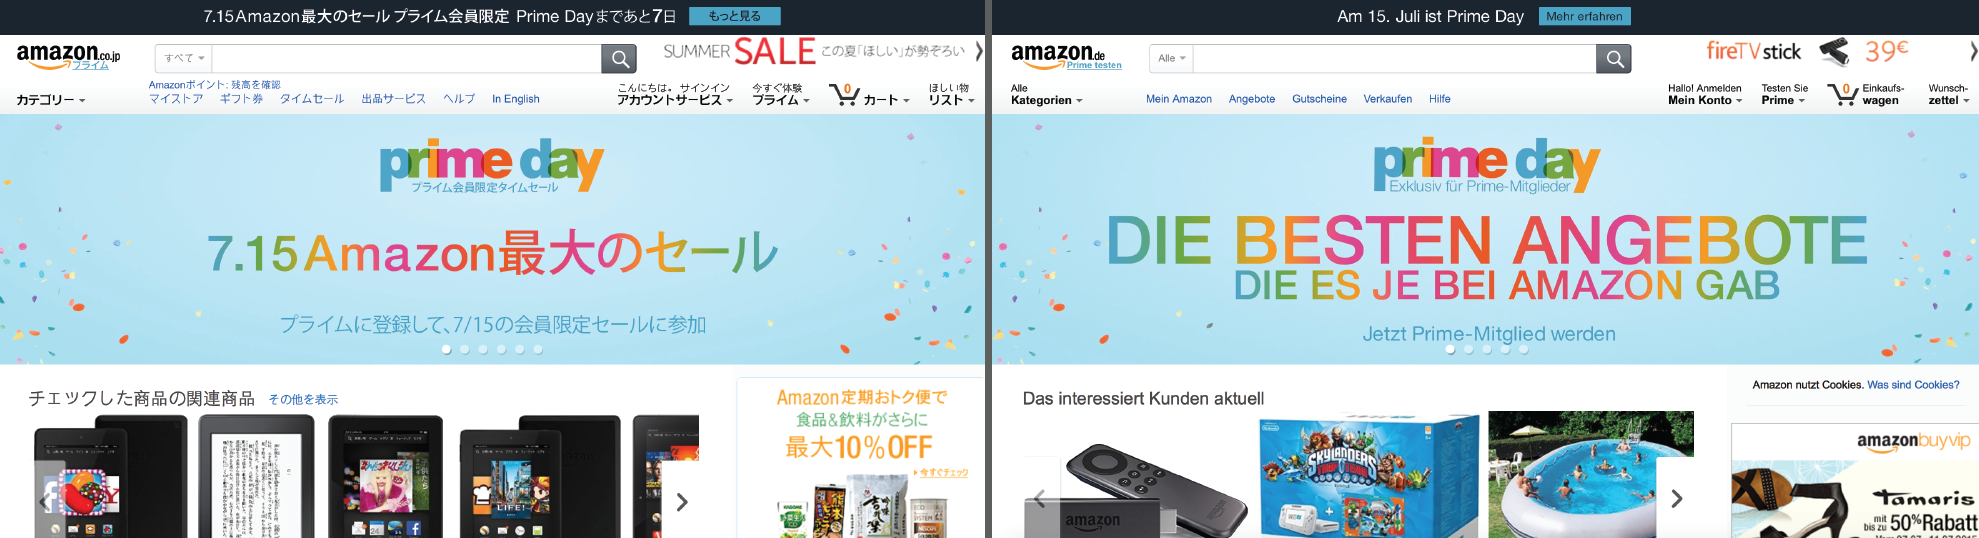 Amazon's homepage in Japanese and German